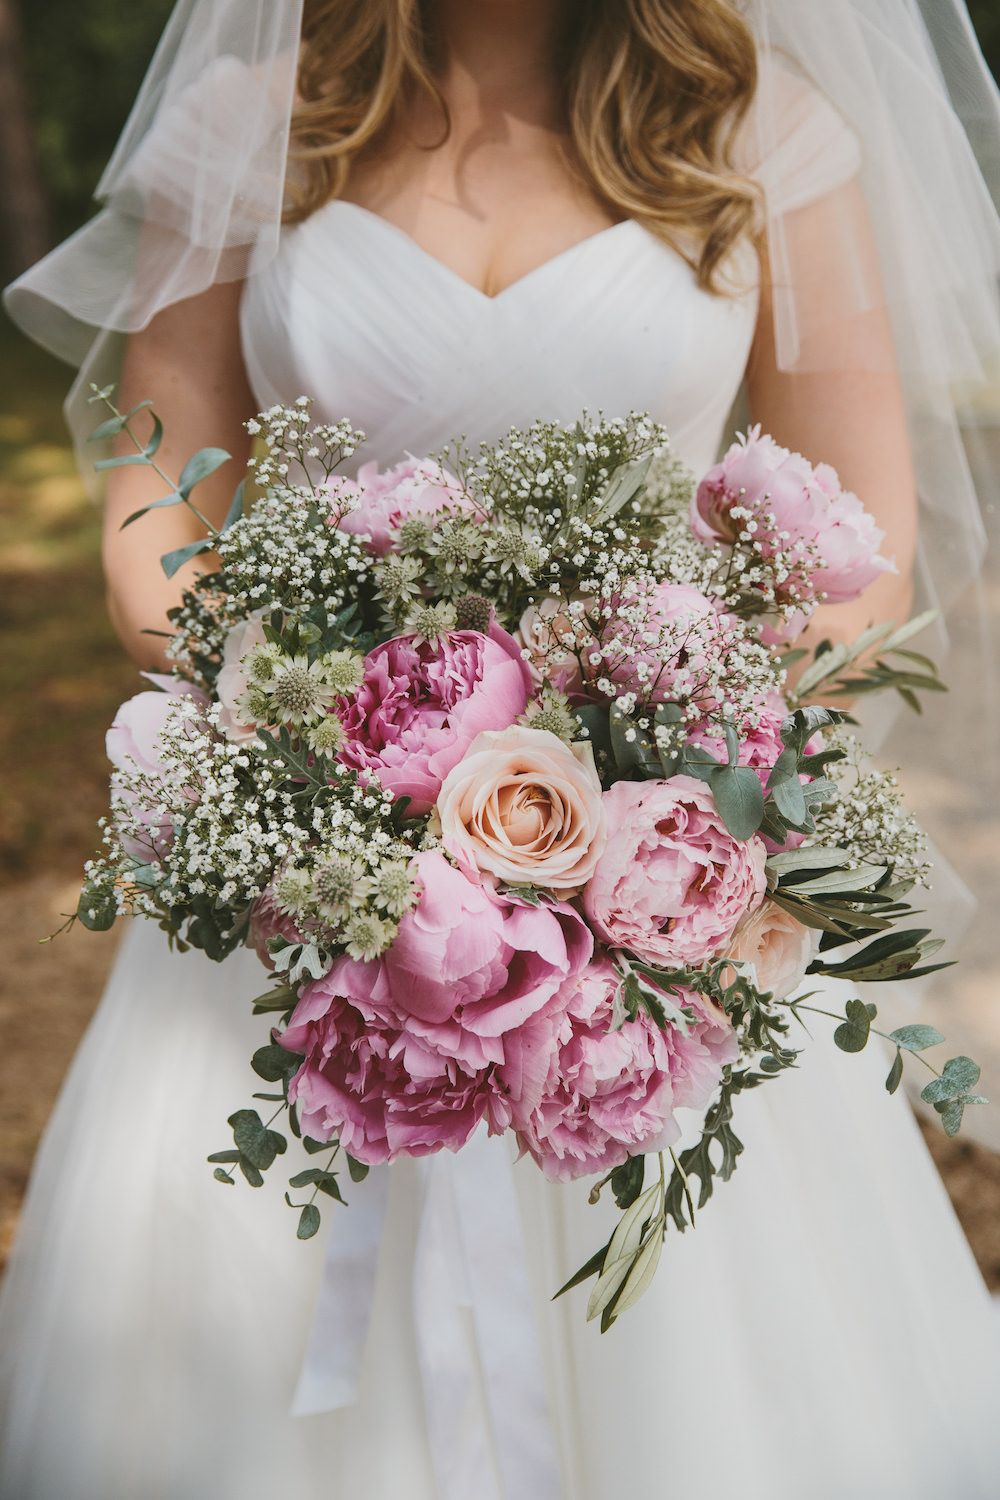 Rustic Wedding At Gate Street Barn With Suzanne Neville Bridal